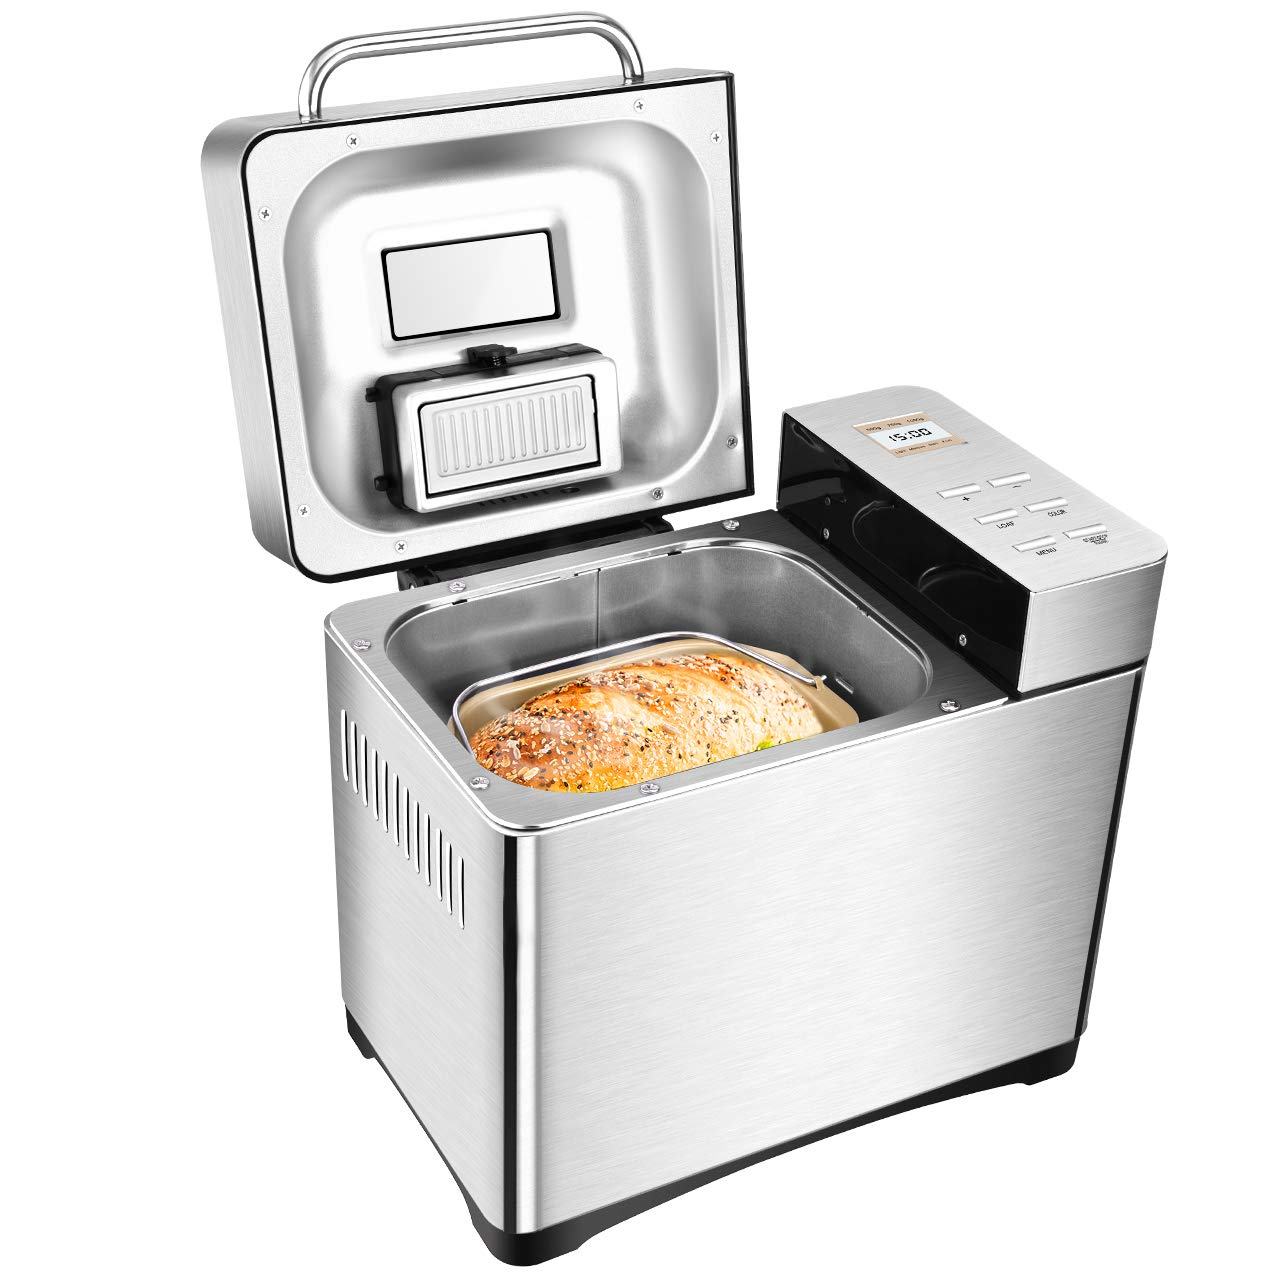 KBS MBF-013 2LB Bread Maker Machine, Premium Version Gluten Free Breadmaker with Fruit&Nut Dispenser, 19 Menus 3 Crust Colors, Large LCD Display Nicer User Interface, Fully Stainless Steel